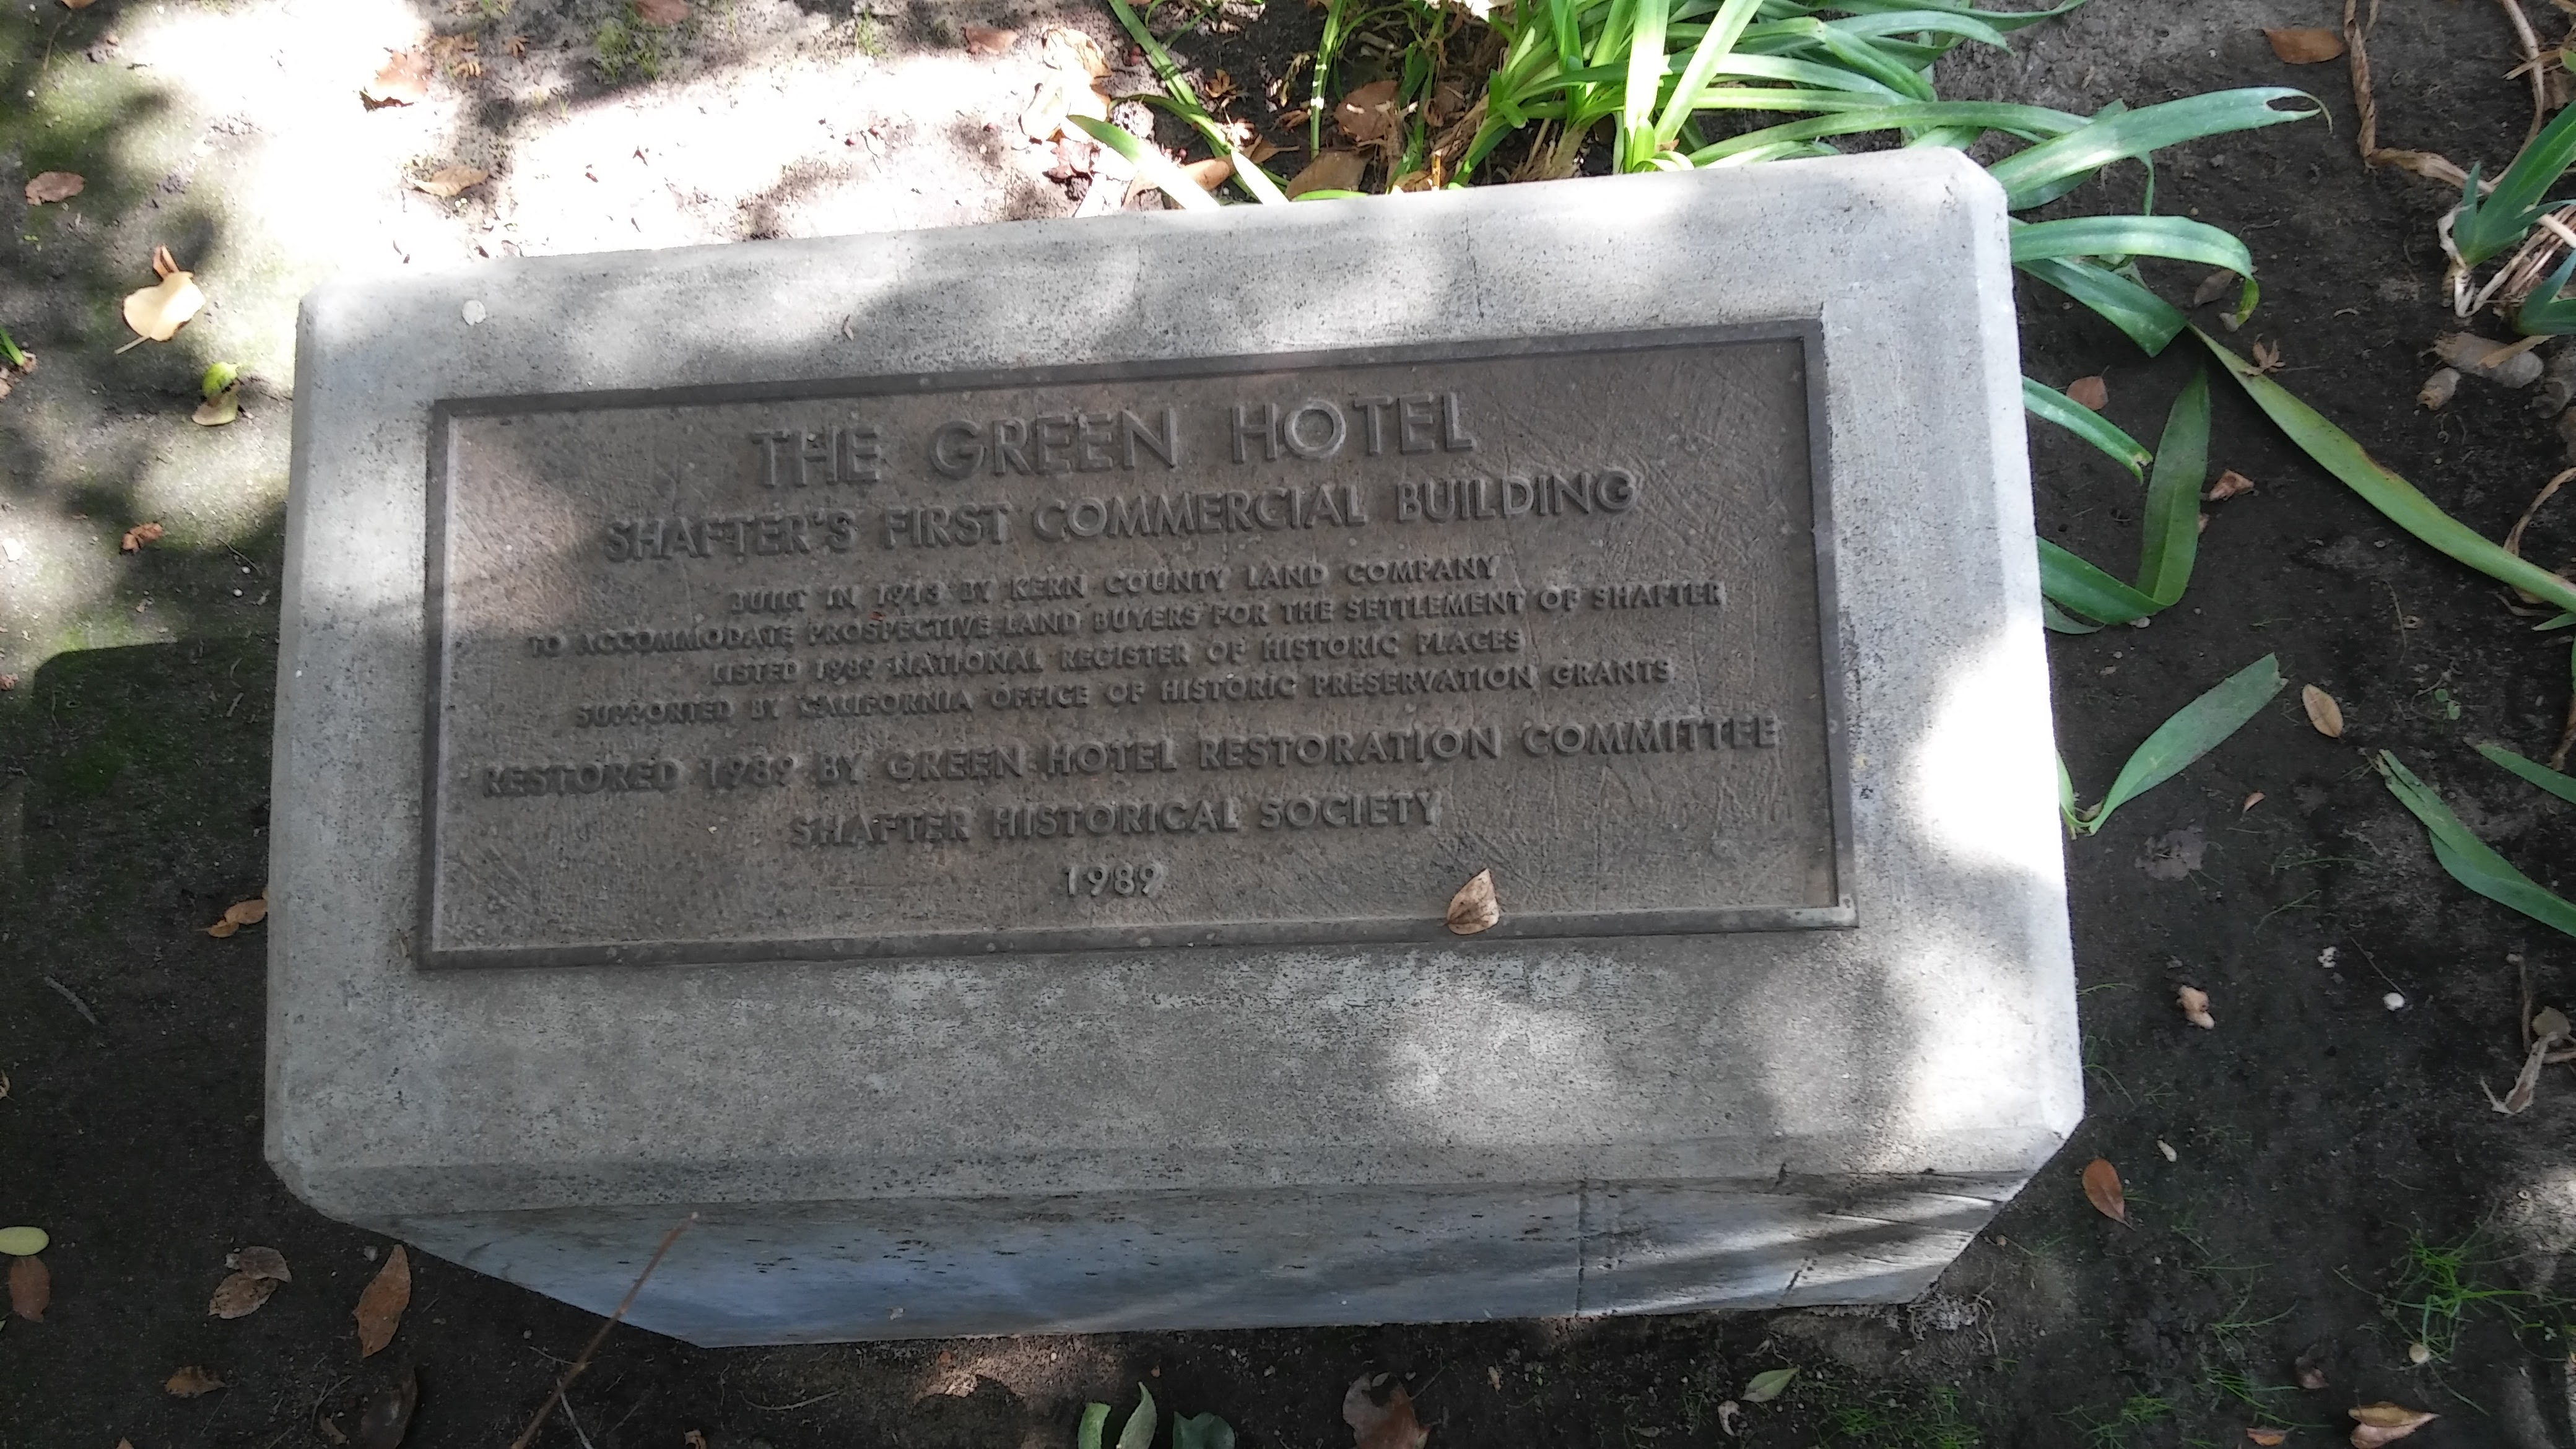 Plaque stating that the Green Hotel had been placed on the National Register of Historic Places.